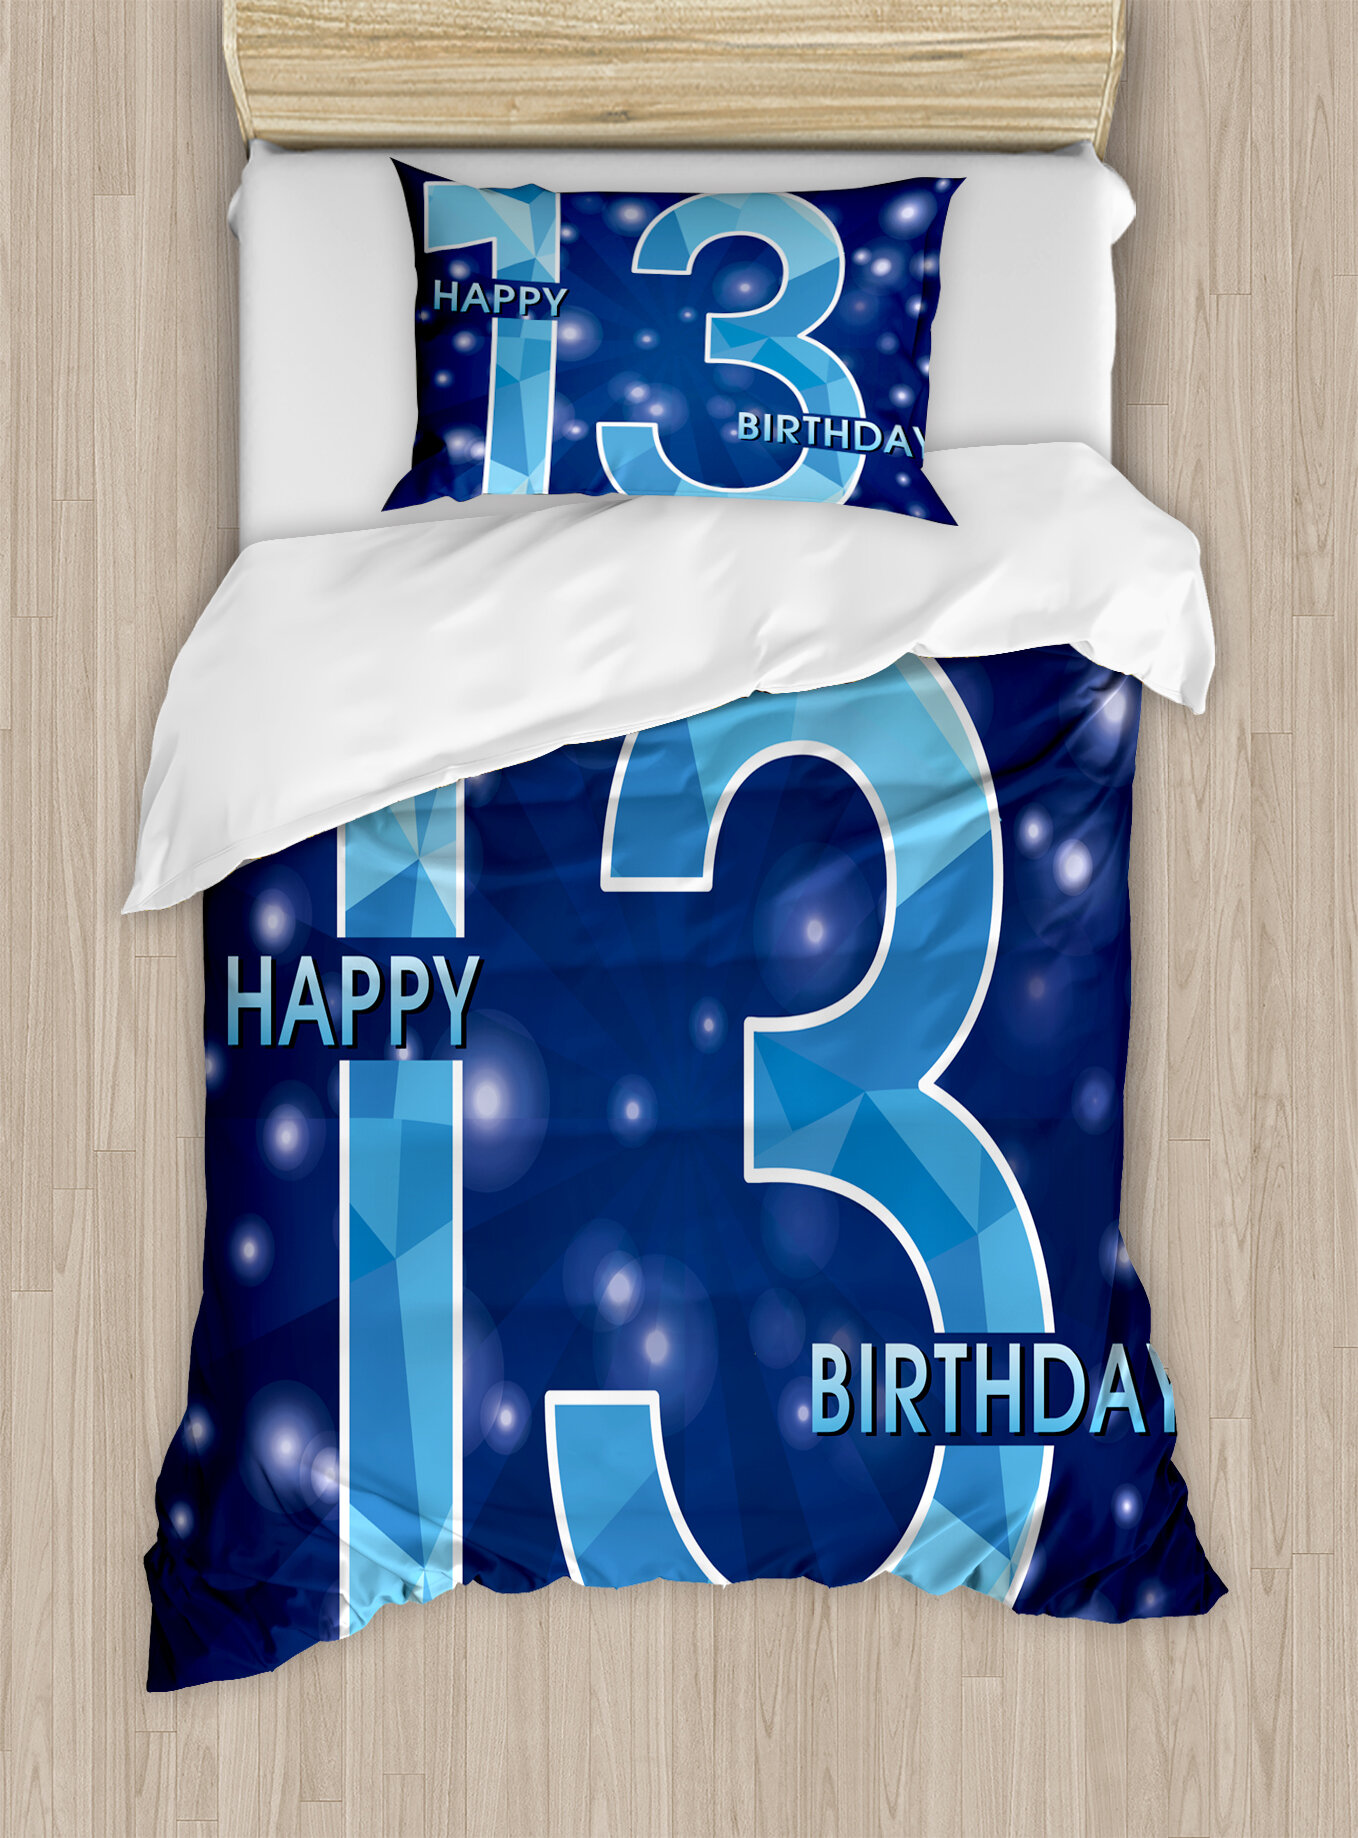 Ambesonne 13th Birthday Decorations Duvet Cover Set